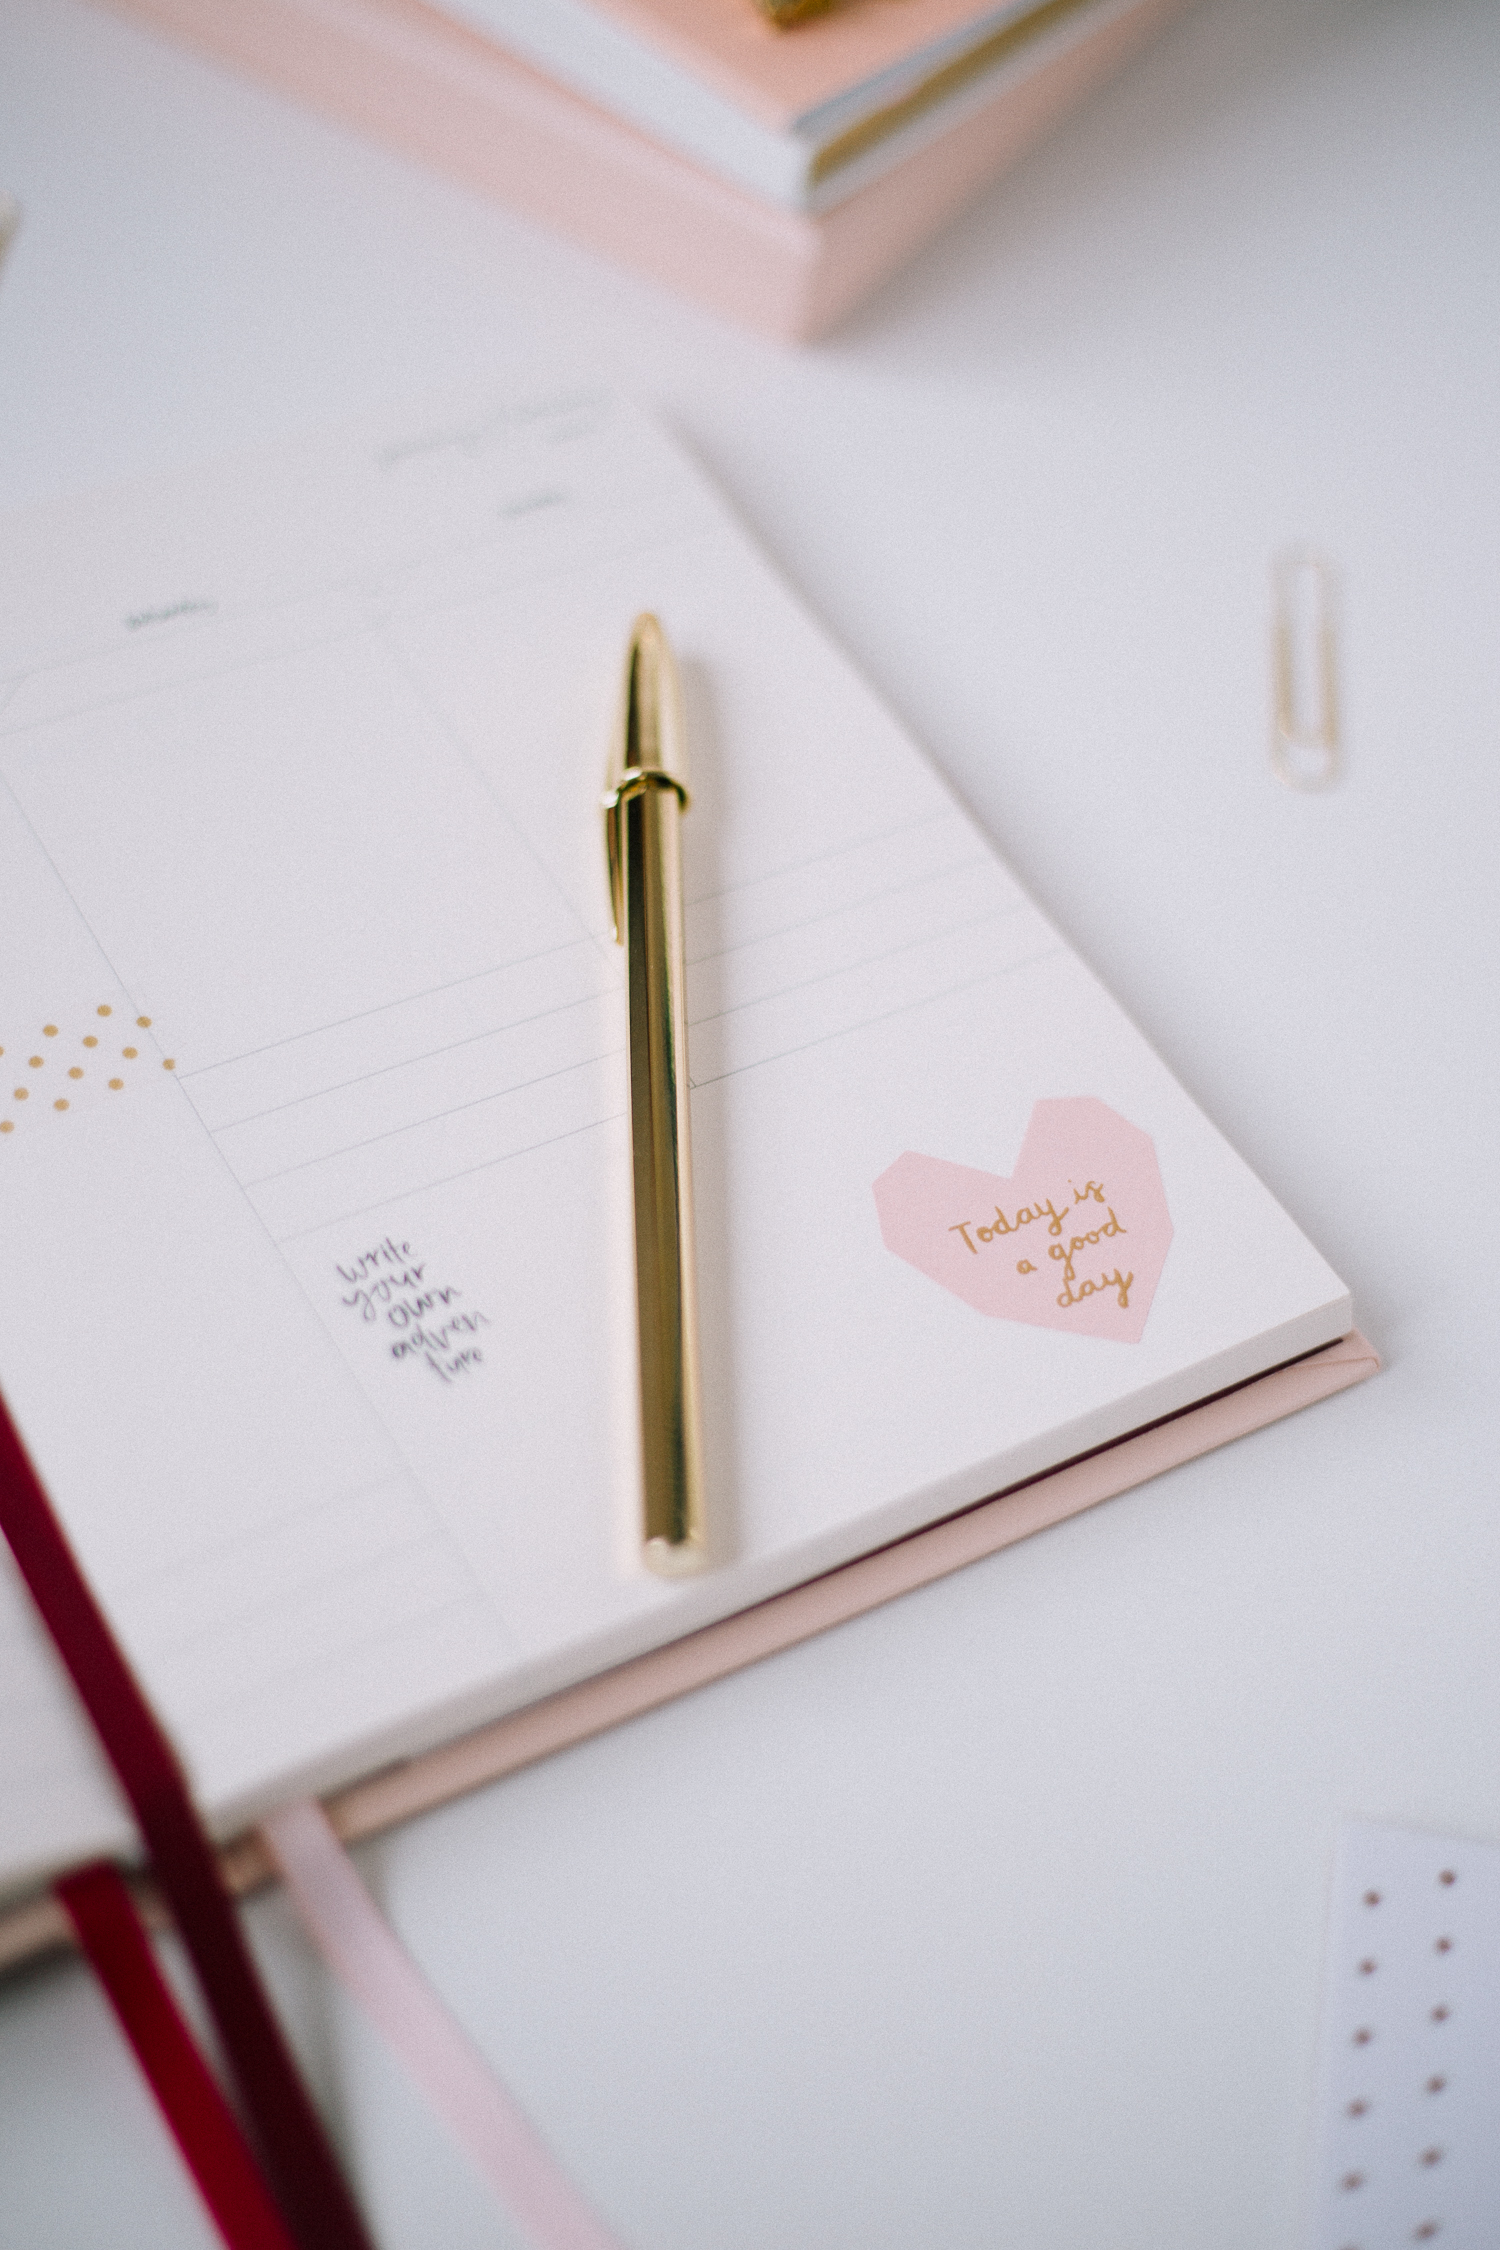 How To Make The Most Of Your Planner